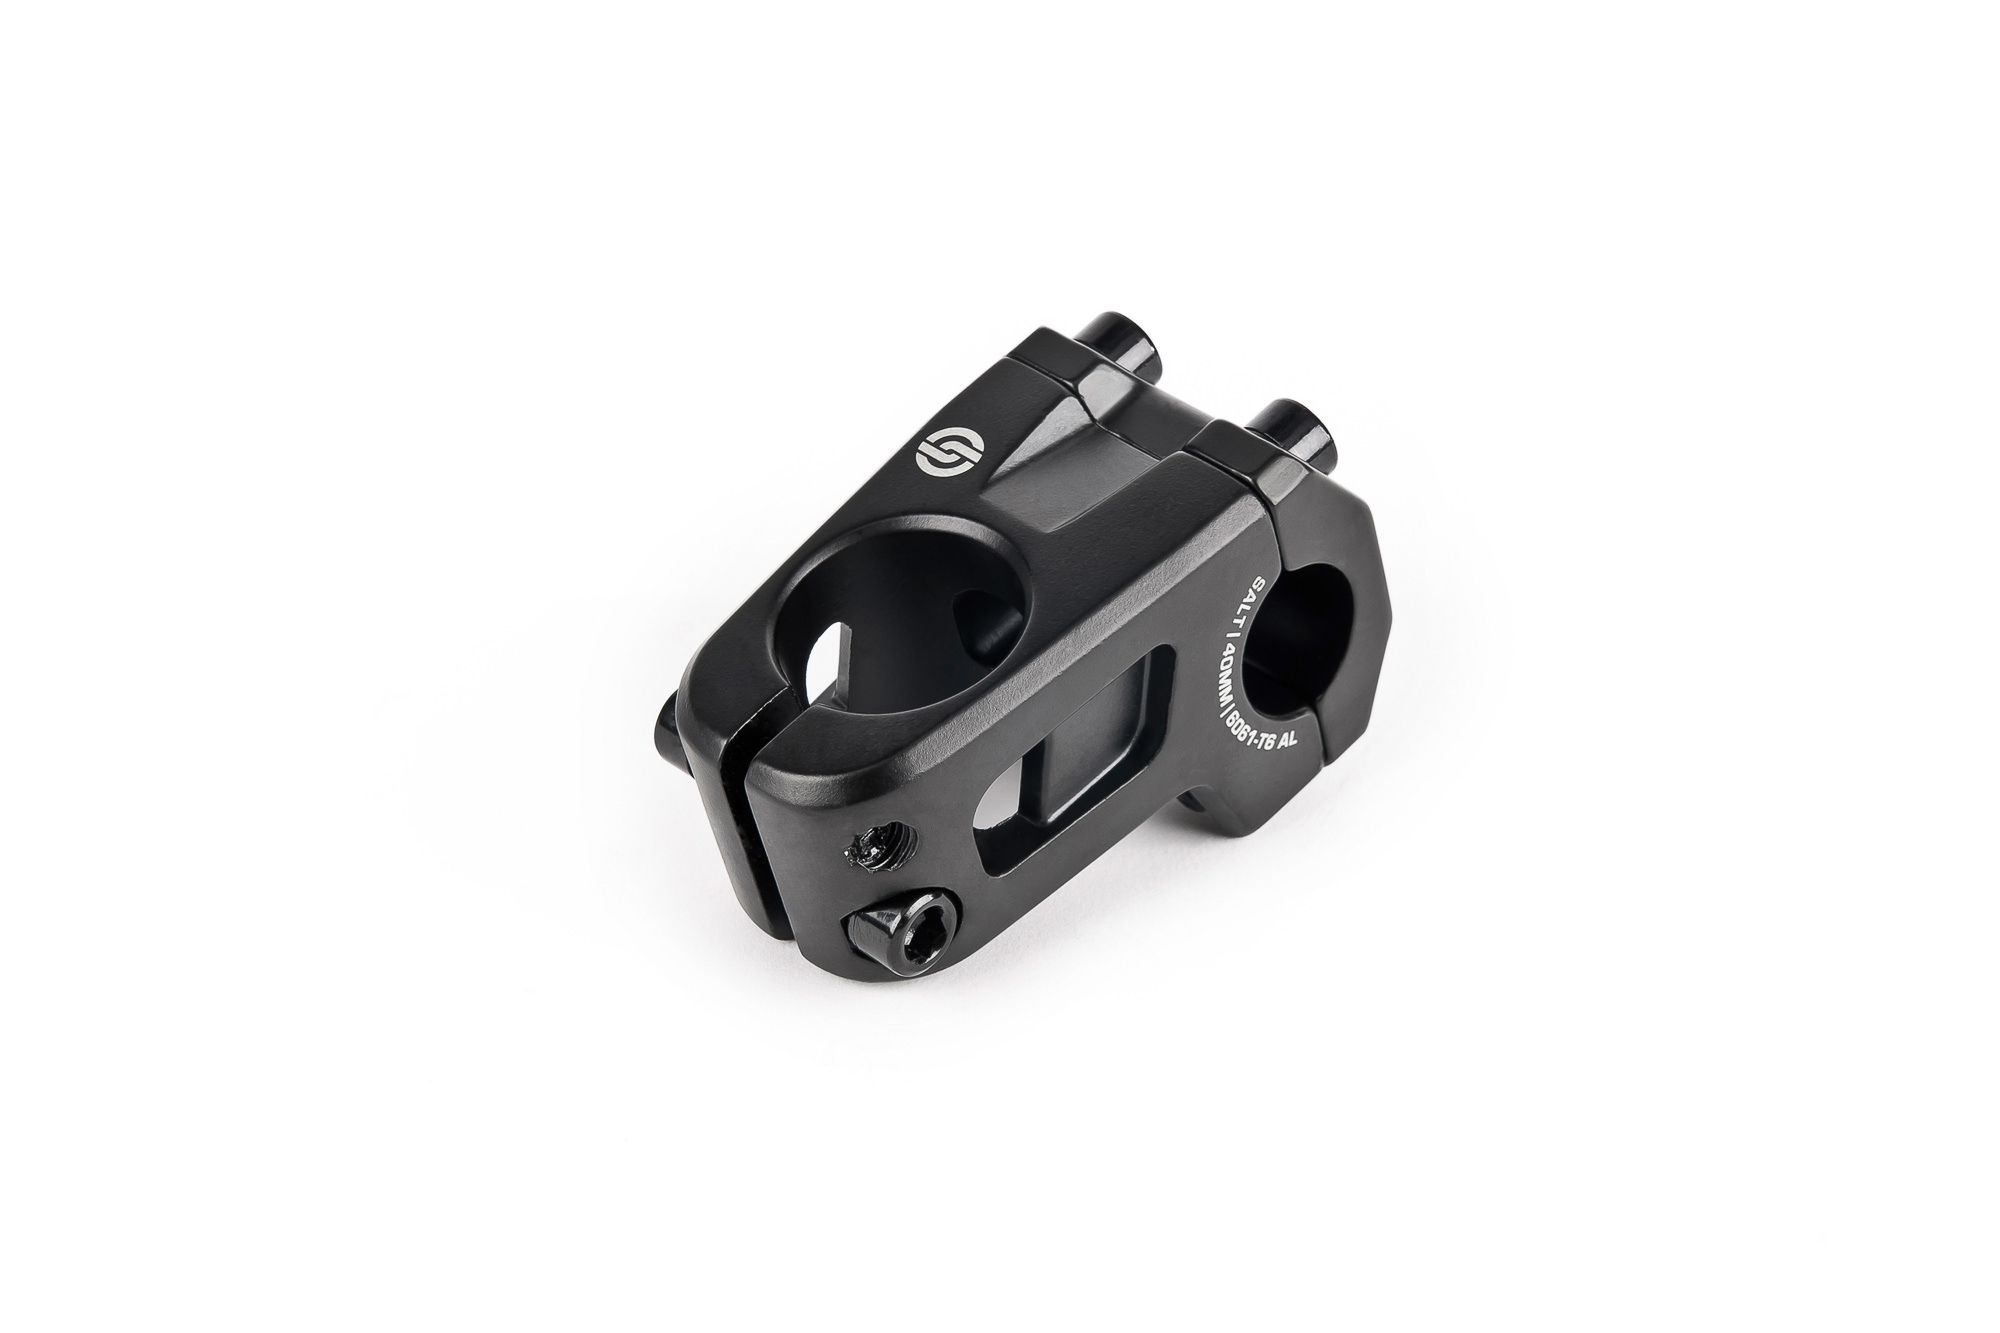 Salt_Junior_frontloader_stem_black_02